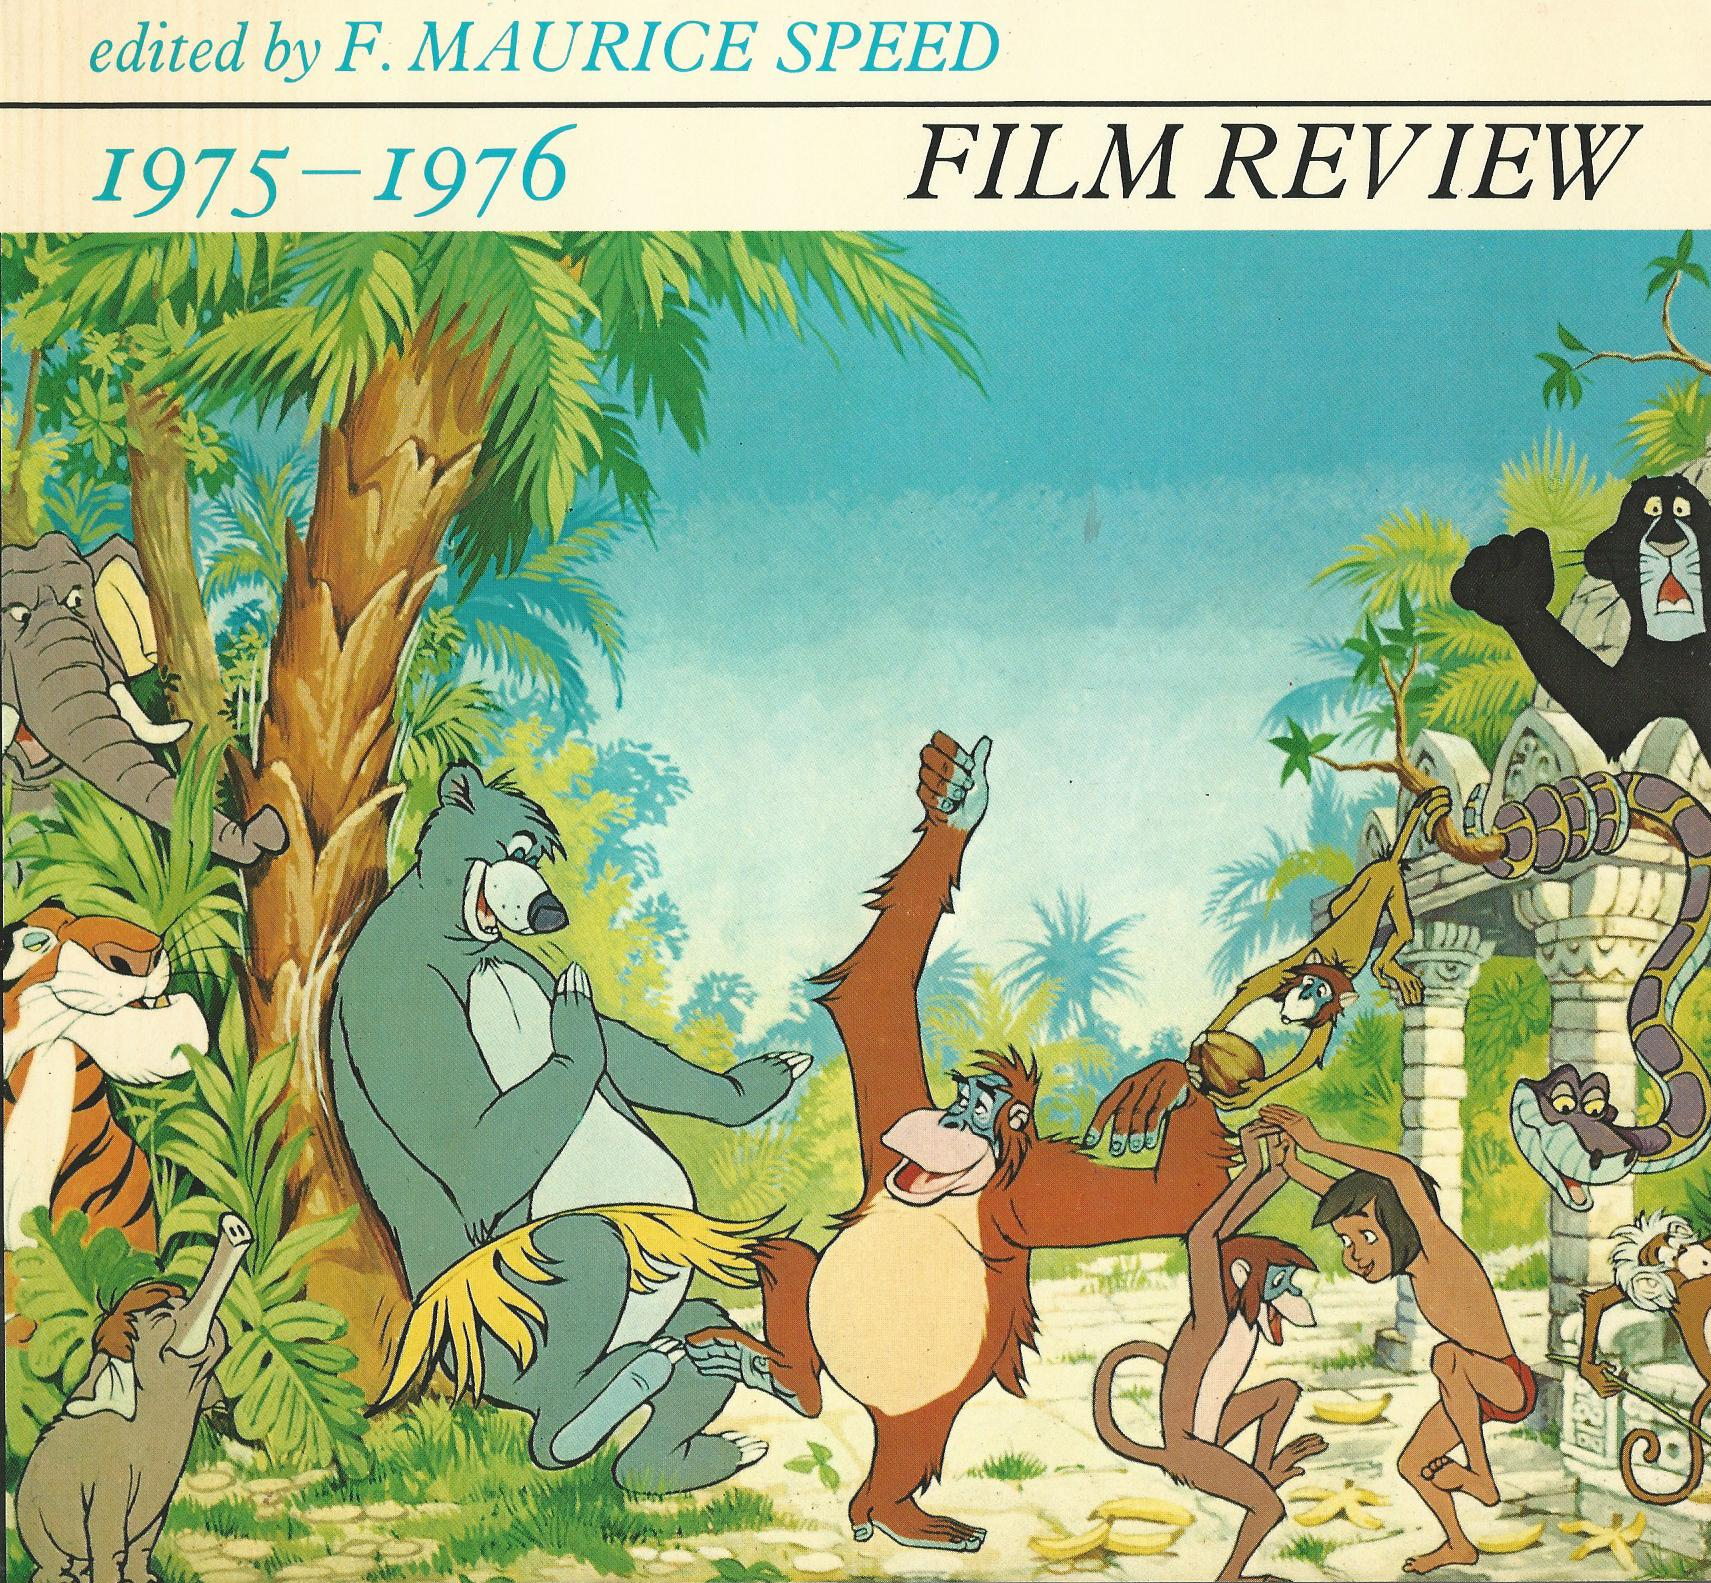 Image for Film Review 1975 - 1976.